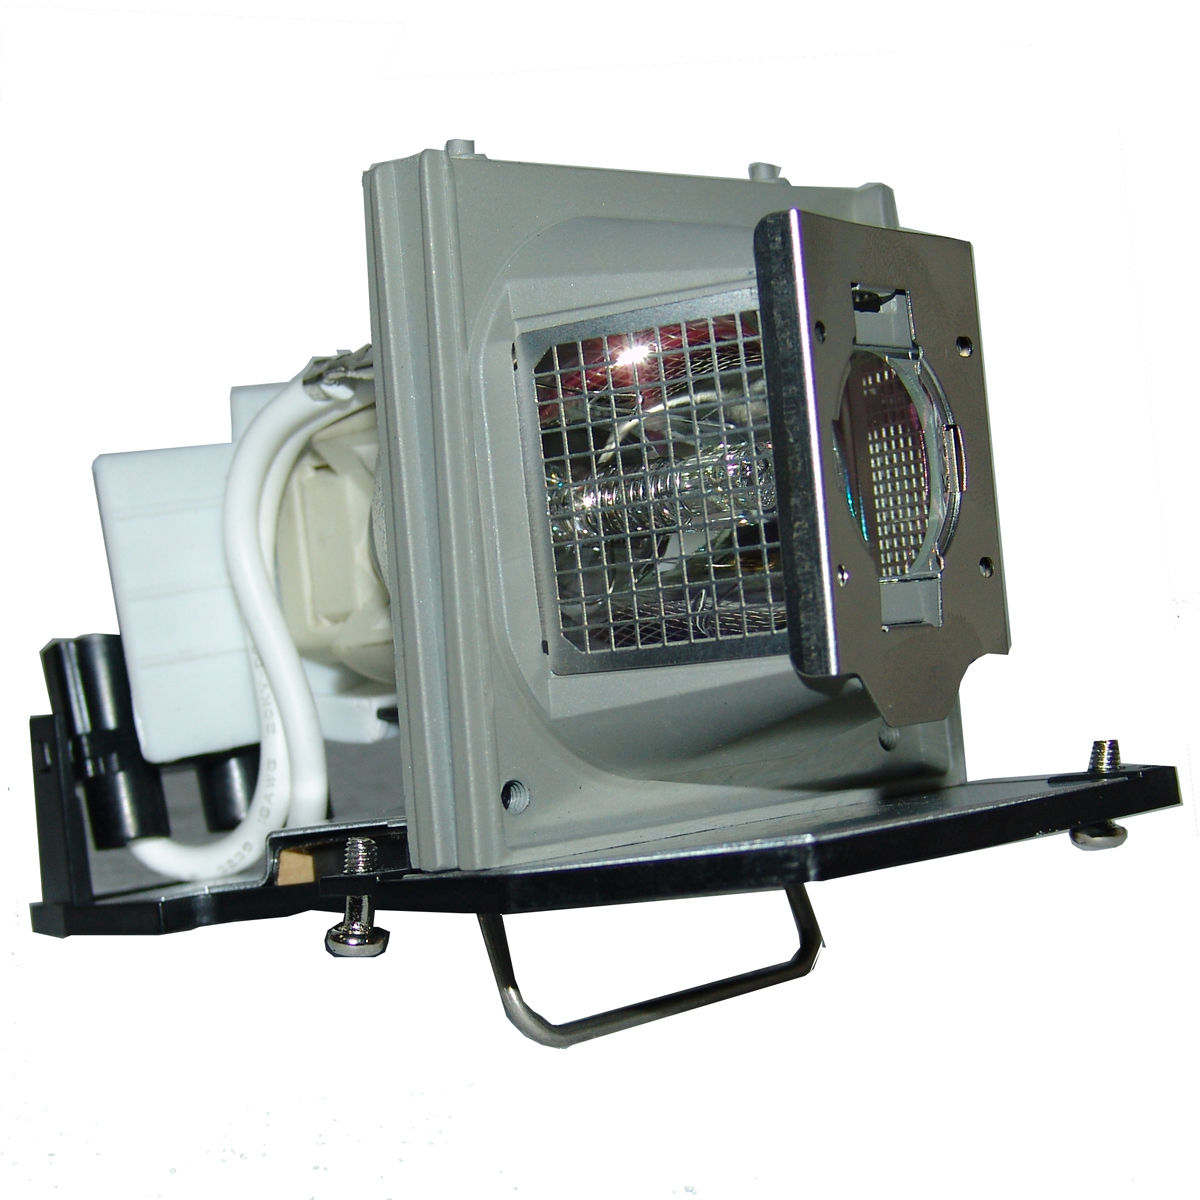 Projector Lamp Bulb P-VIP 180-230/1.0 E20.6 EC.J2701.001 for Acer PD523PD PD525PW PD527D PD527W Projector Bulb Lamp With Housing ec j0401 002 for acer pd116 projector lamp bulb with housing